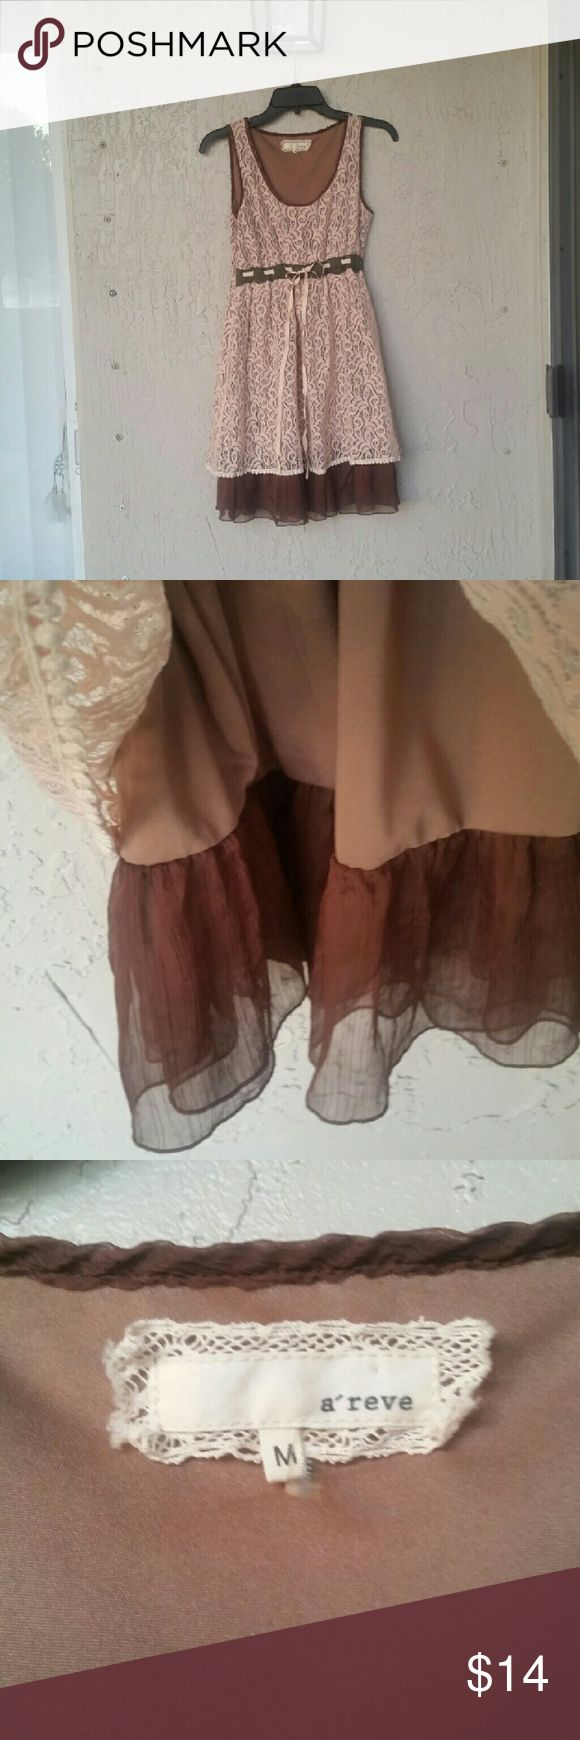 Pink Lace Babydoll Dress Pink and brown lace dress with a adjustable bow waistline. In Perfect condition! Dresses